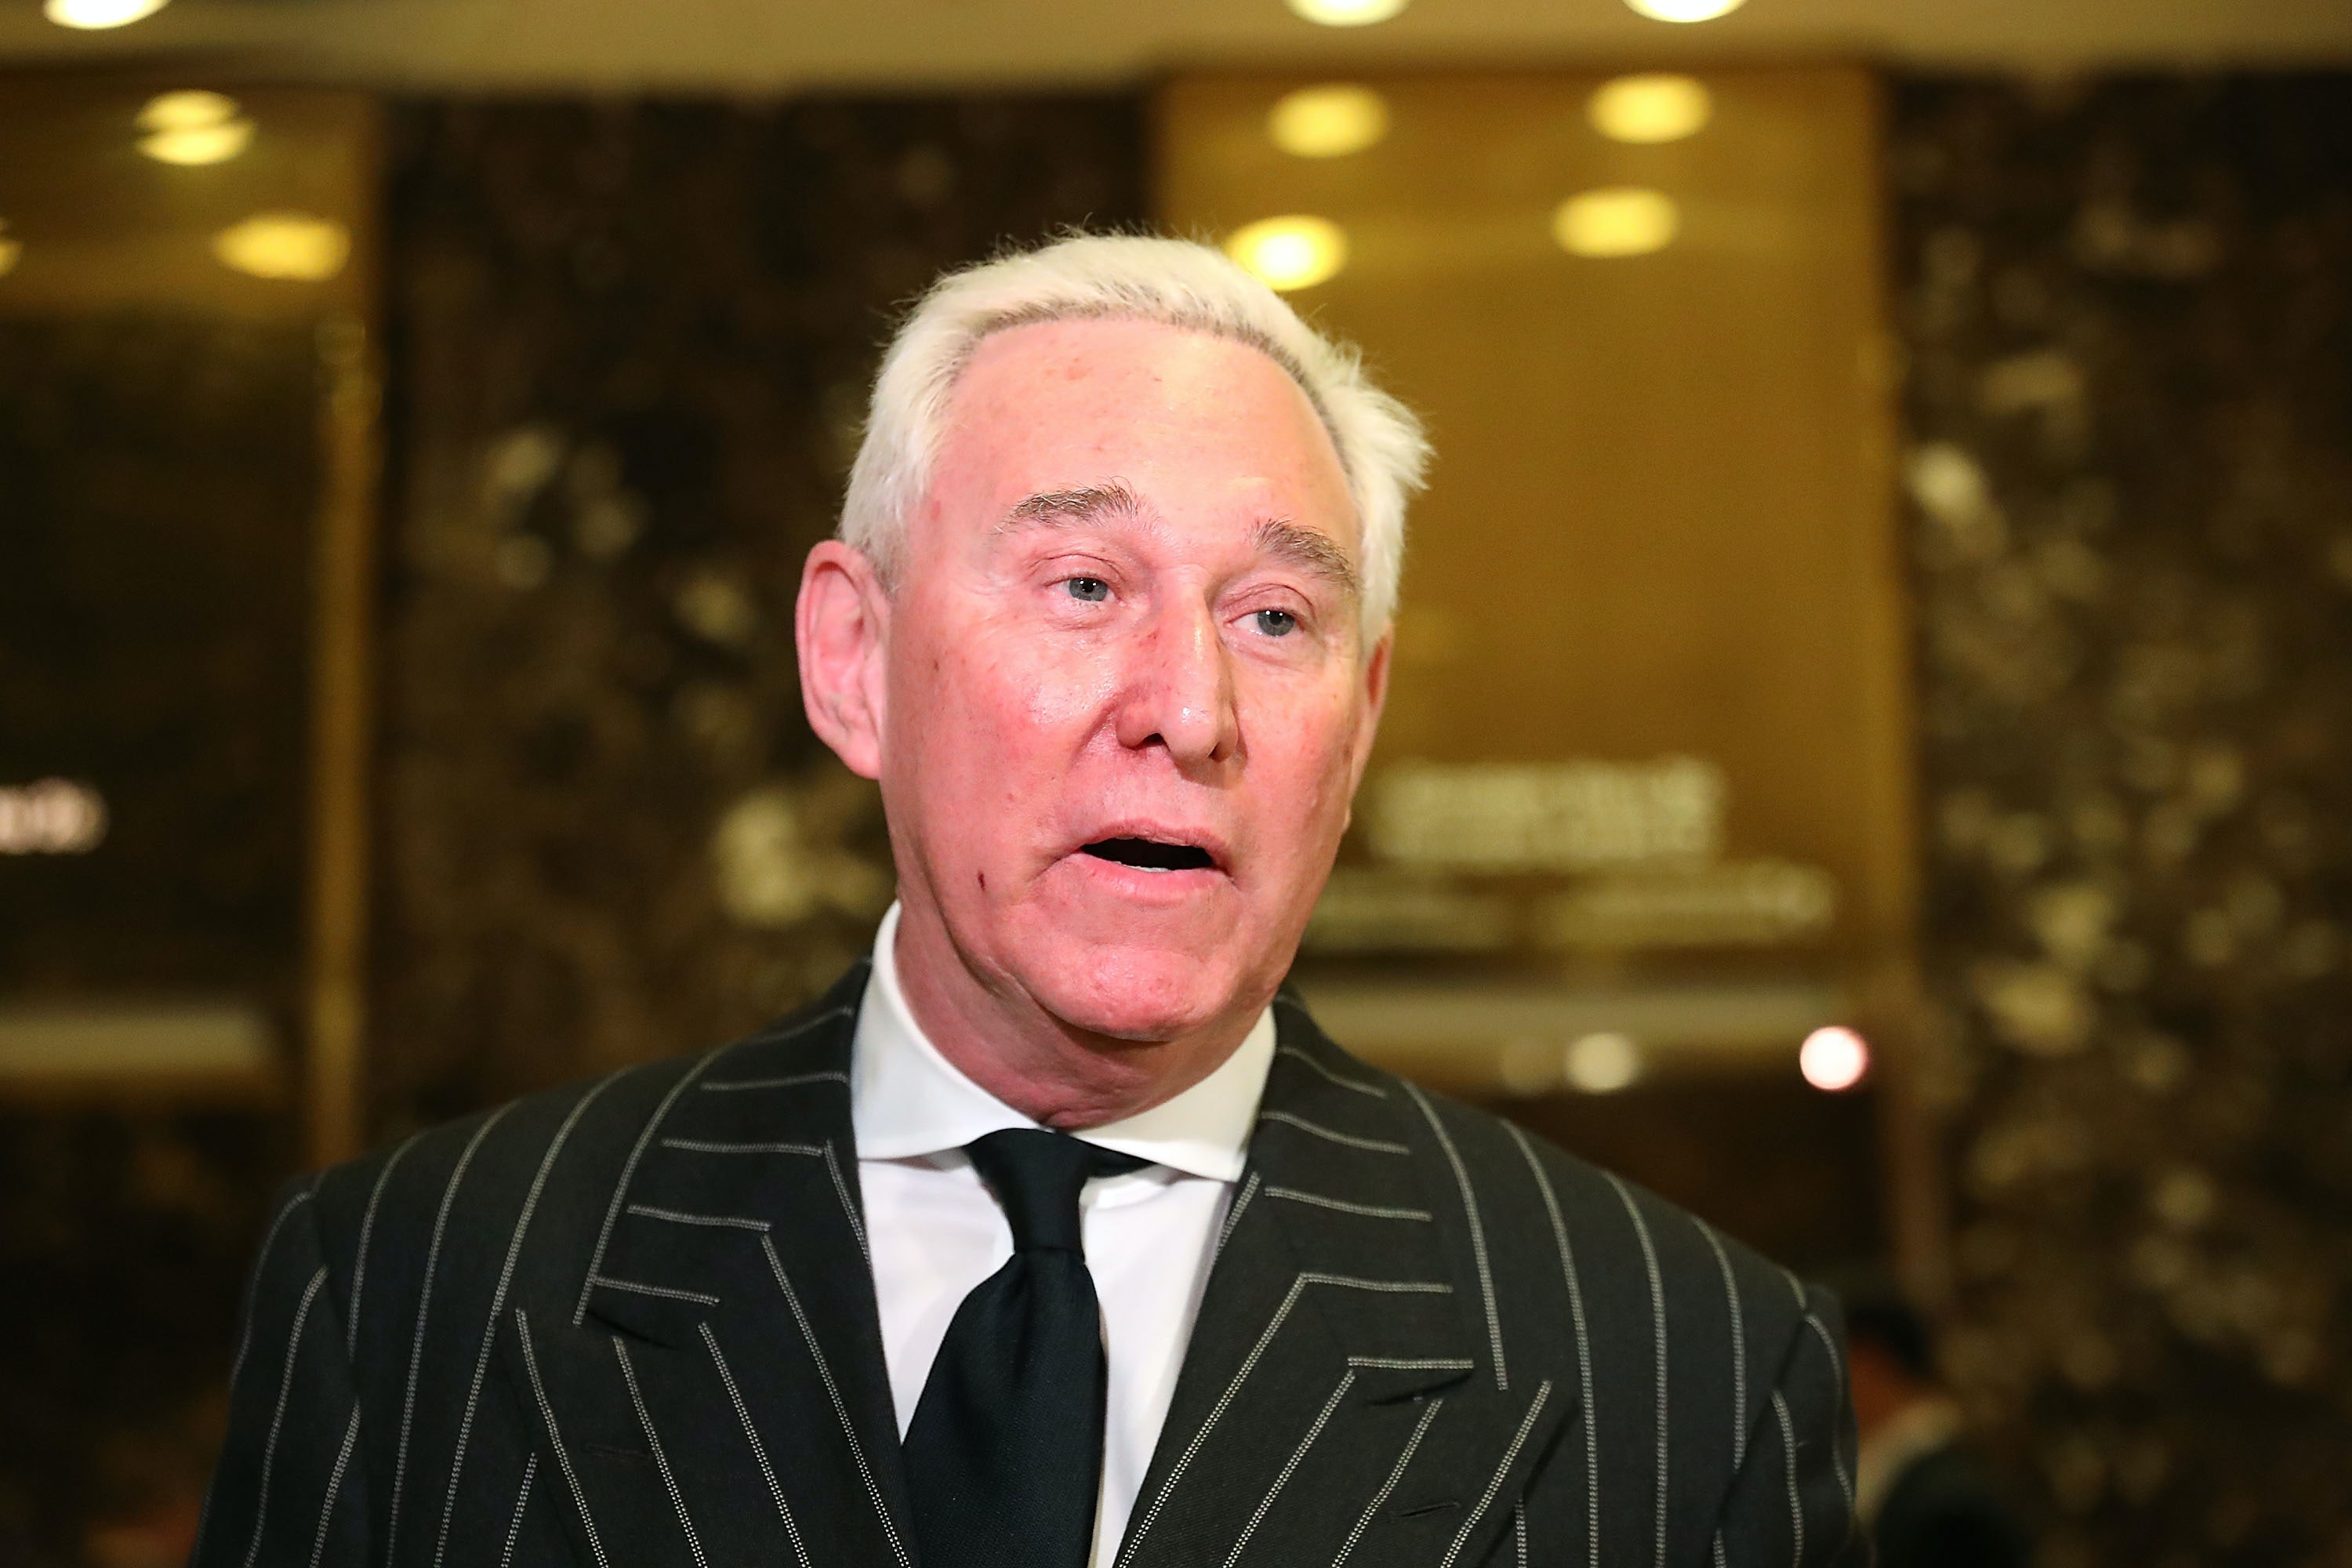 Former Trump Adviser Roger Stone Admits Collusion With WikiLeaks, Then Deletes It